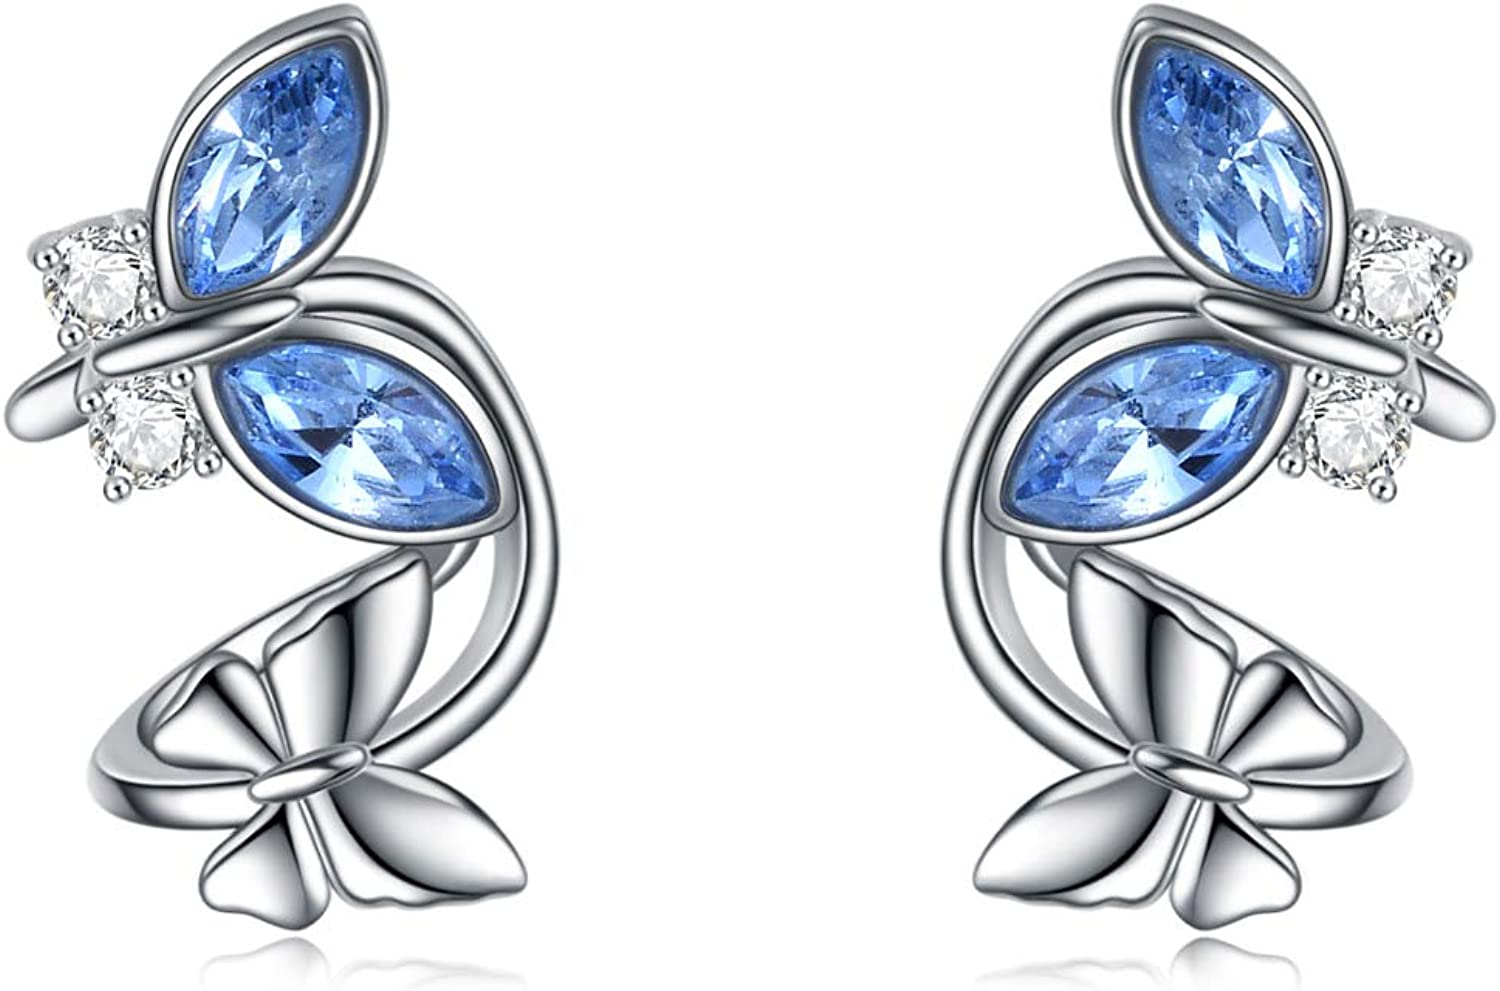 AOBOCO Phoenix Mall Sterling Silver Cuff Earrings Non Pierced Ears sold out Cryst for